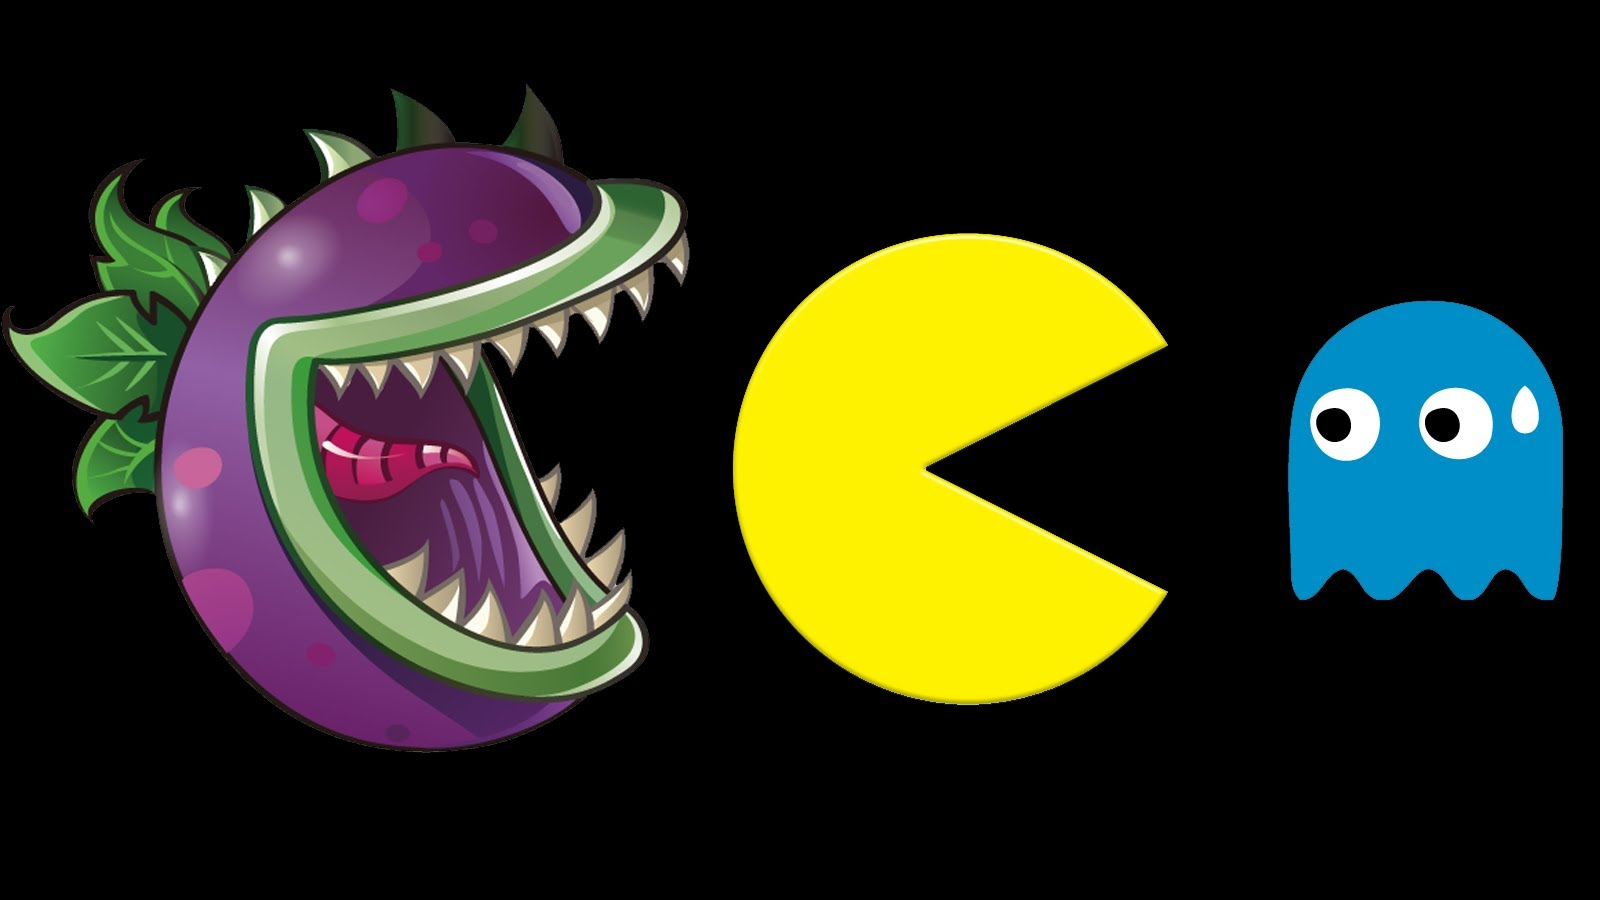 Plants vs Zombies vs Pac Man